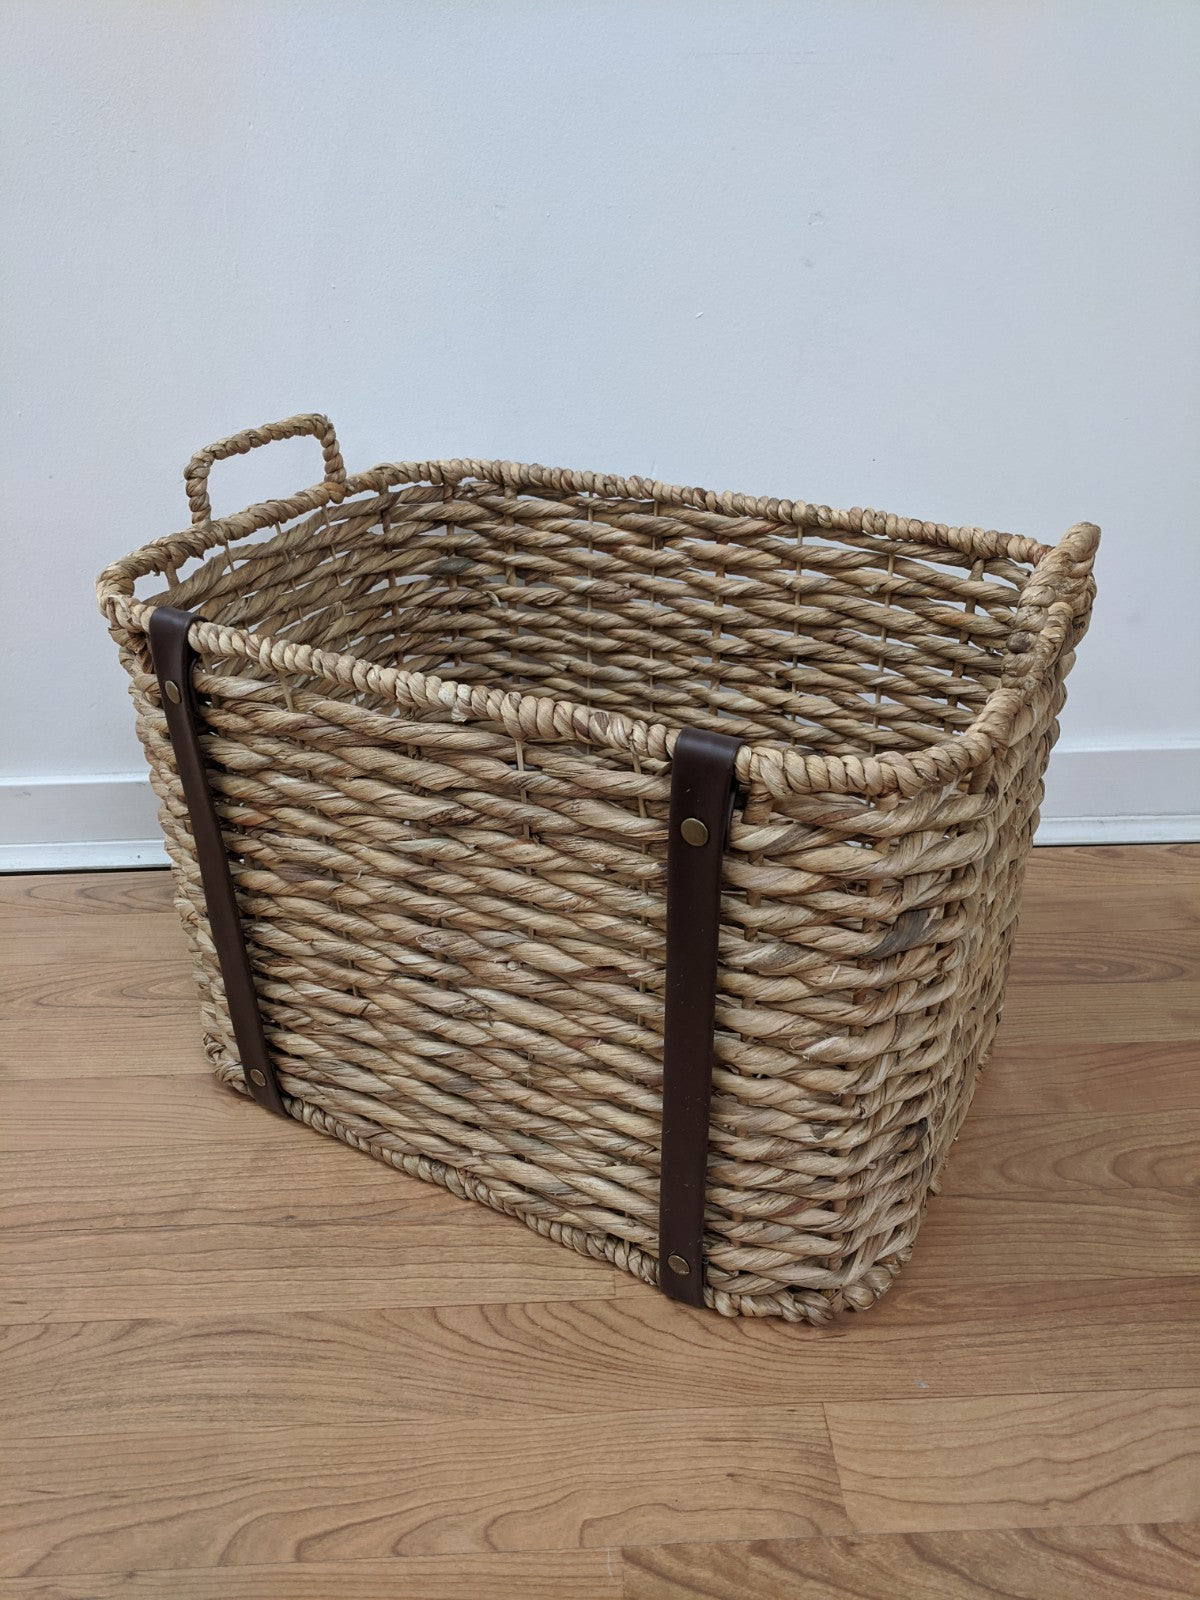 Woven Basket with Leather Straps